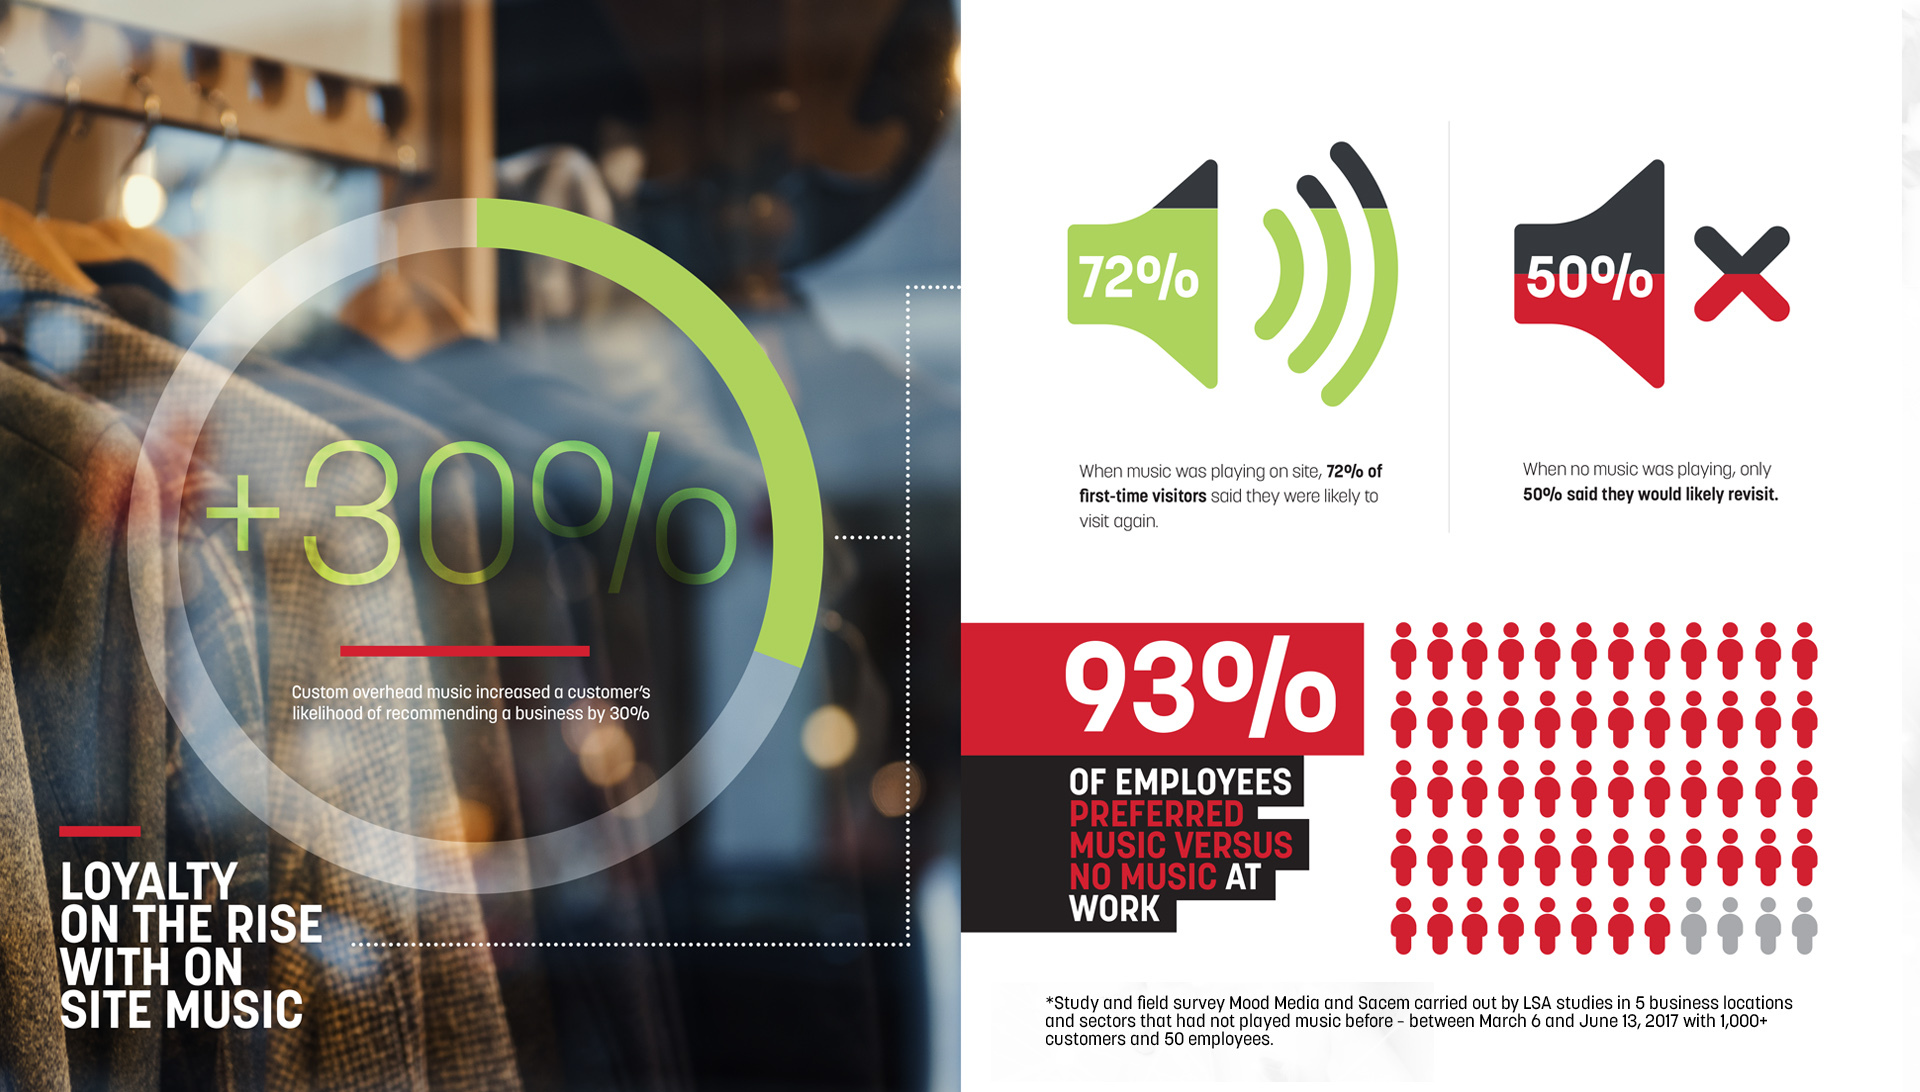 Study to investigate the customer loyalty